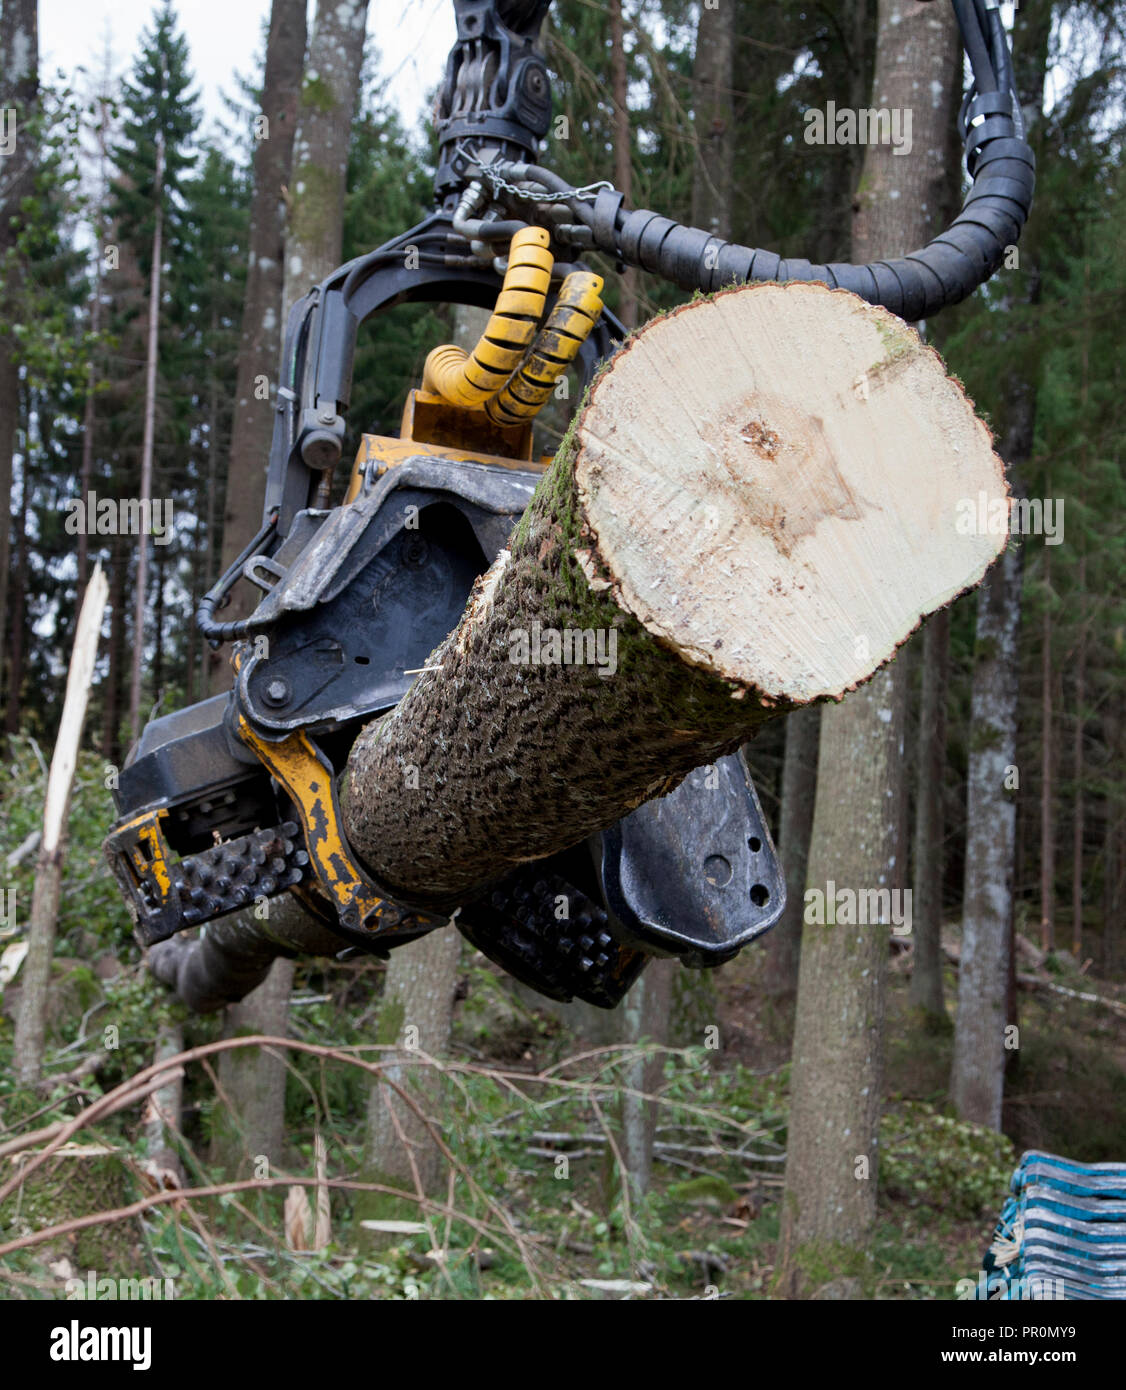 HARVESTER FORESTRY,forestry vehicle works in forest with clearcutting a area - Stock Image